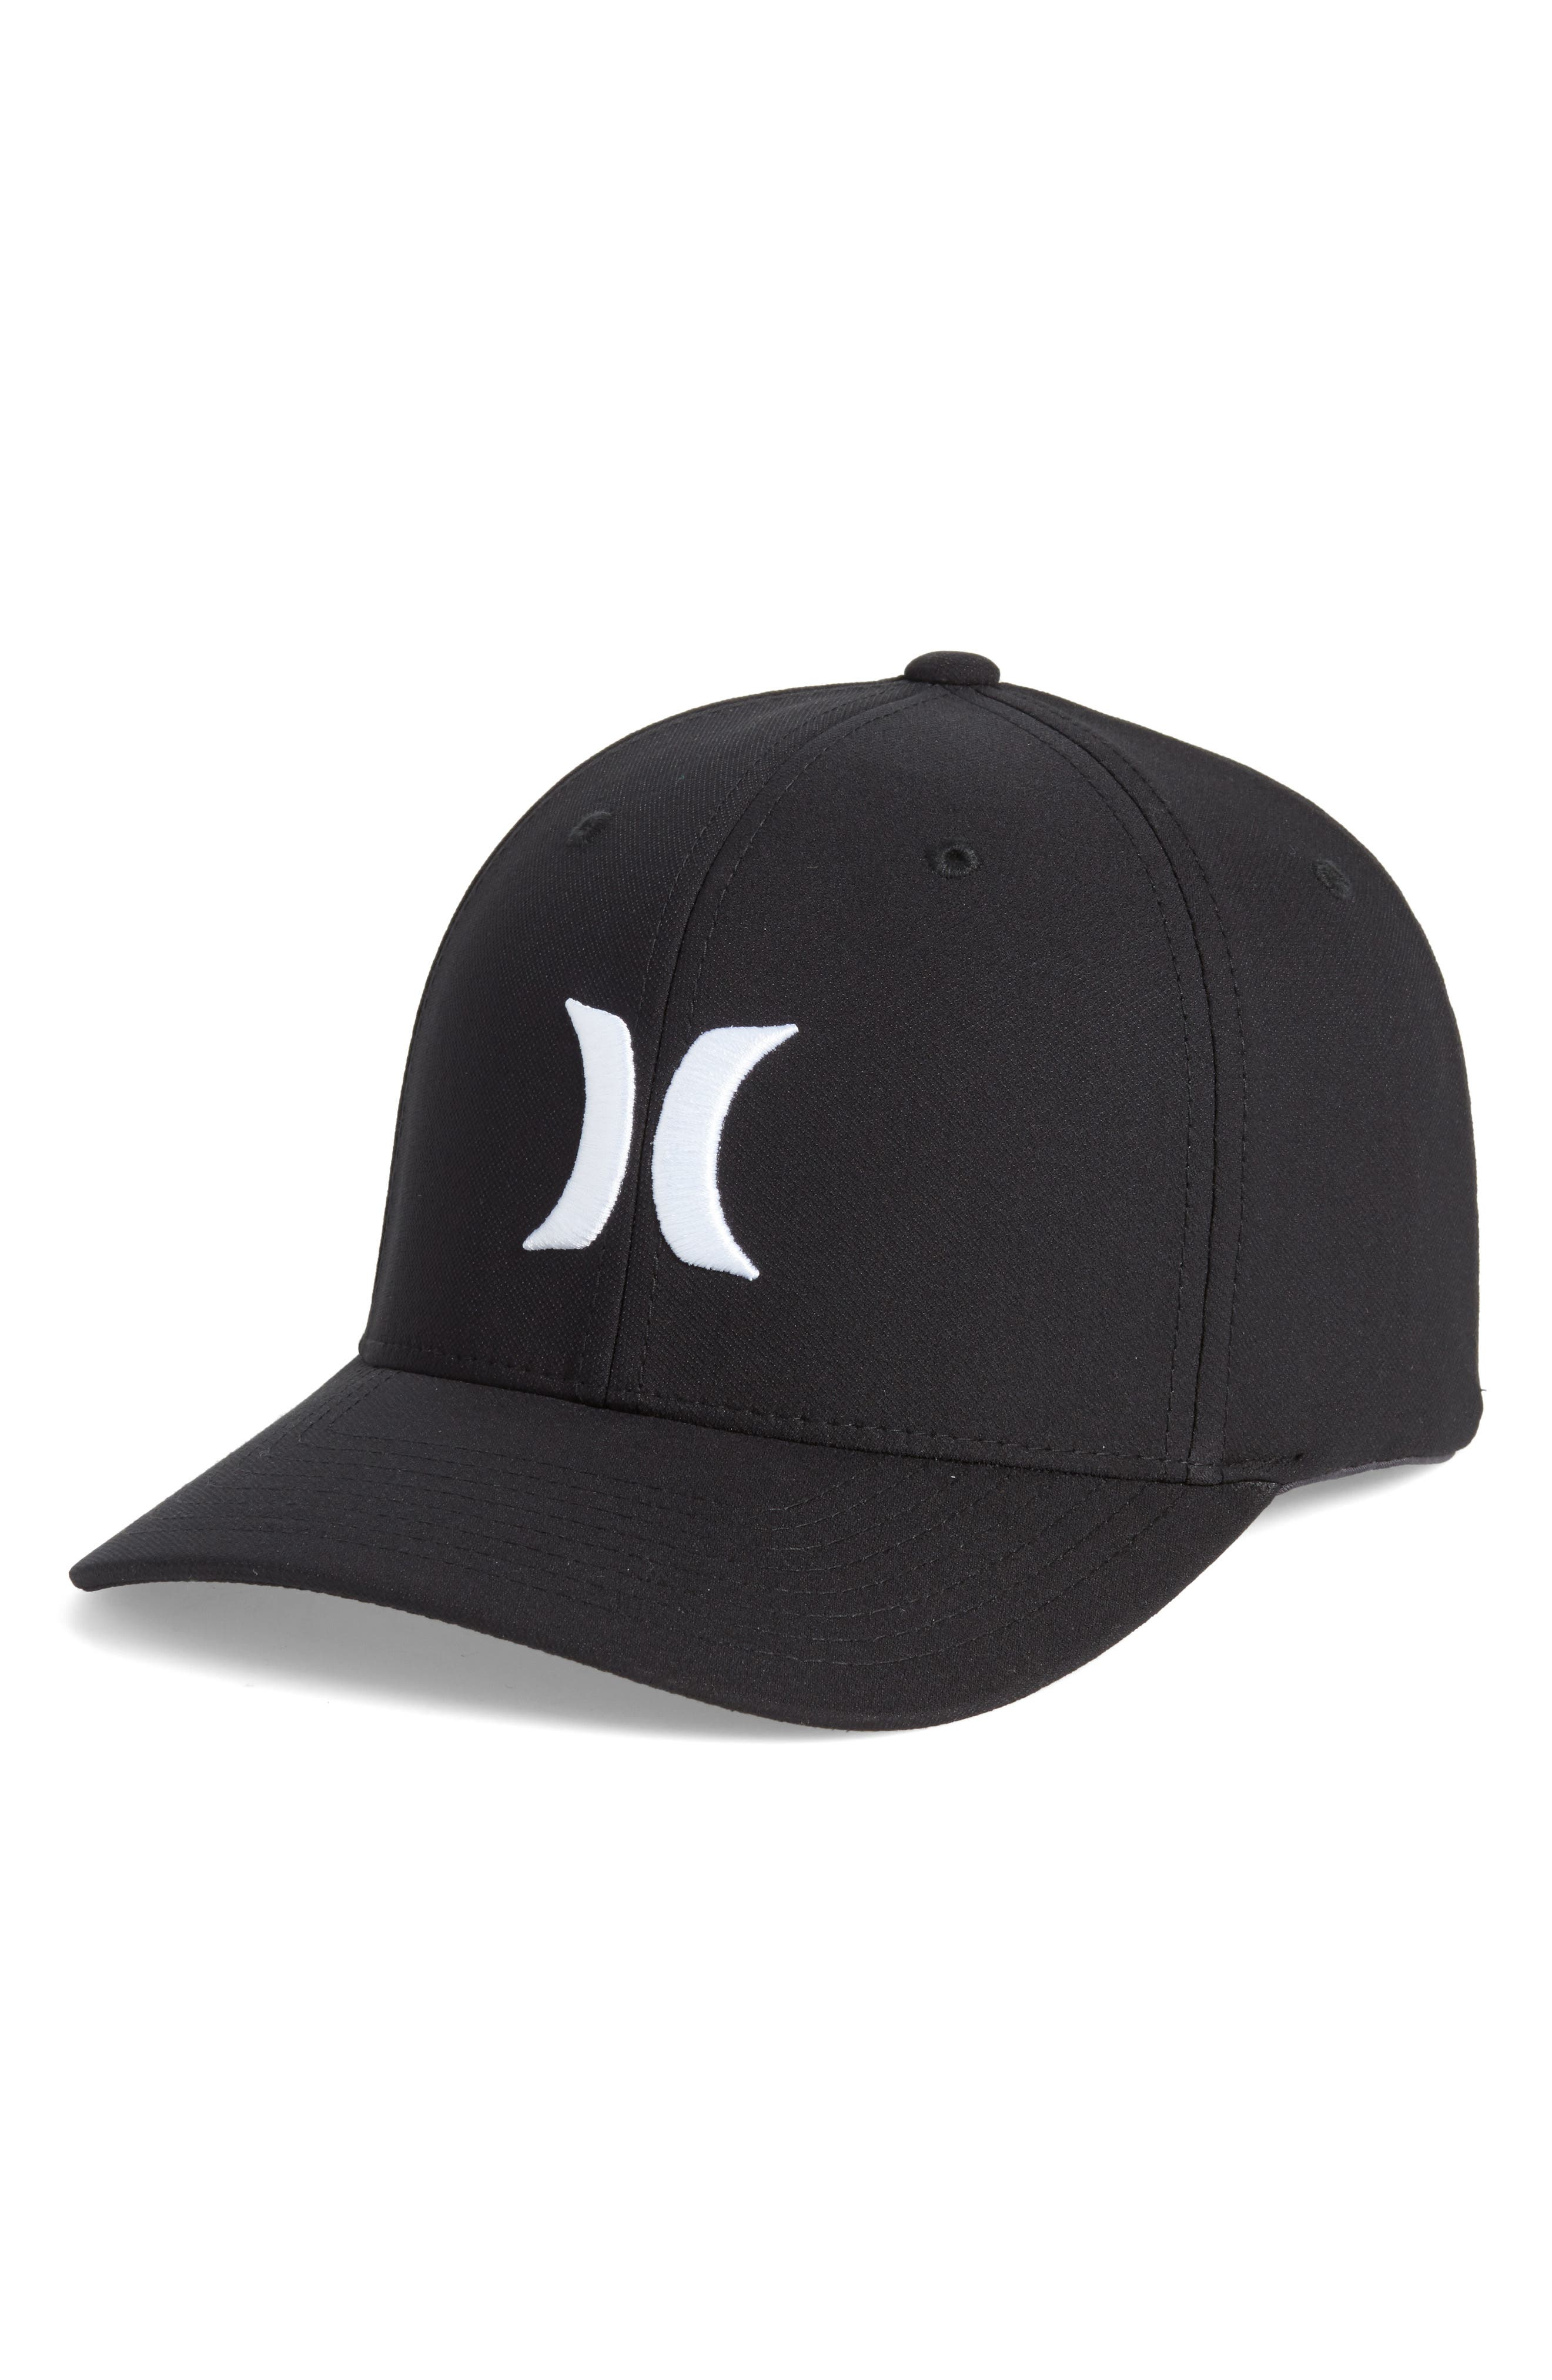 Main Image - Hurley Dri-FIT One & Only Logo Cap